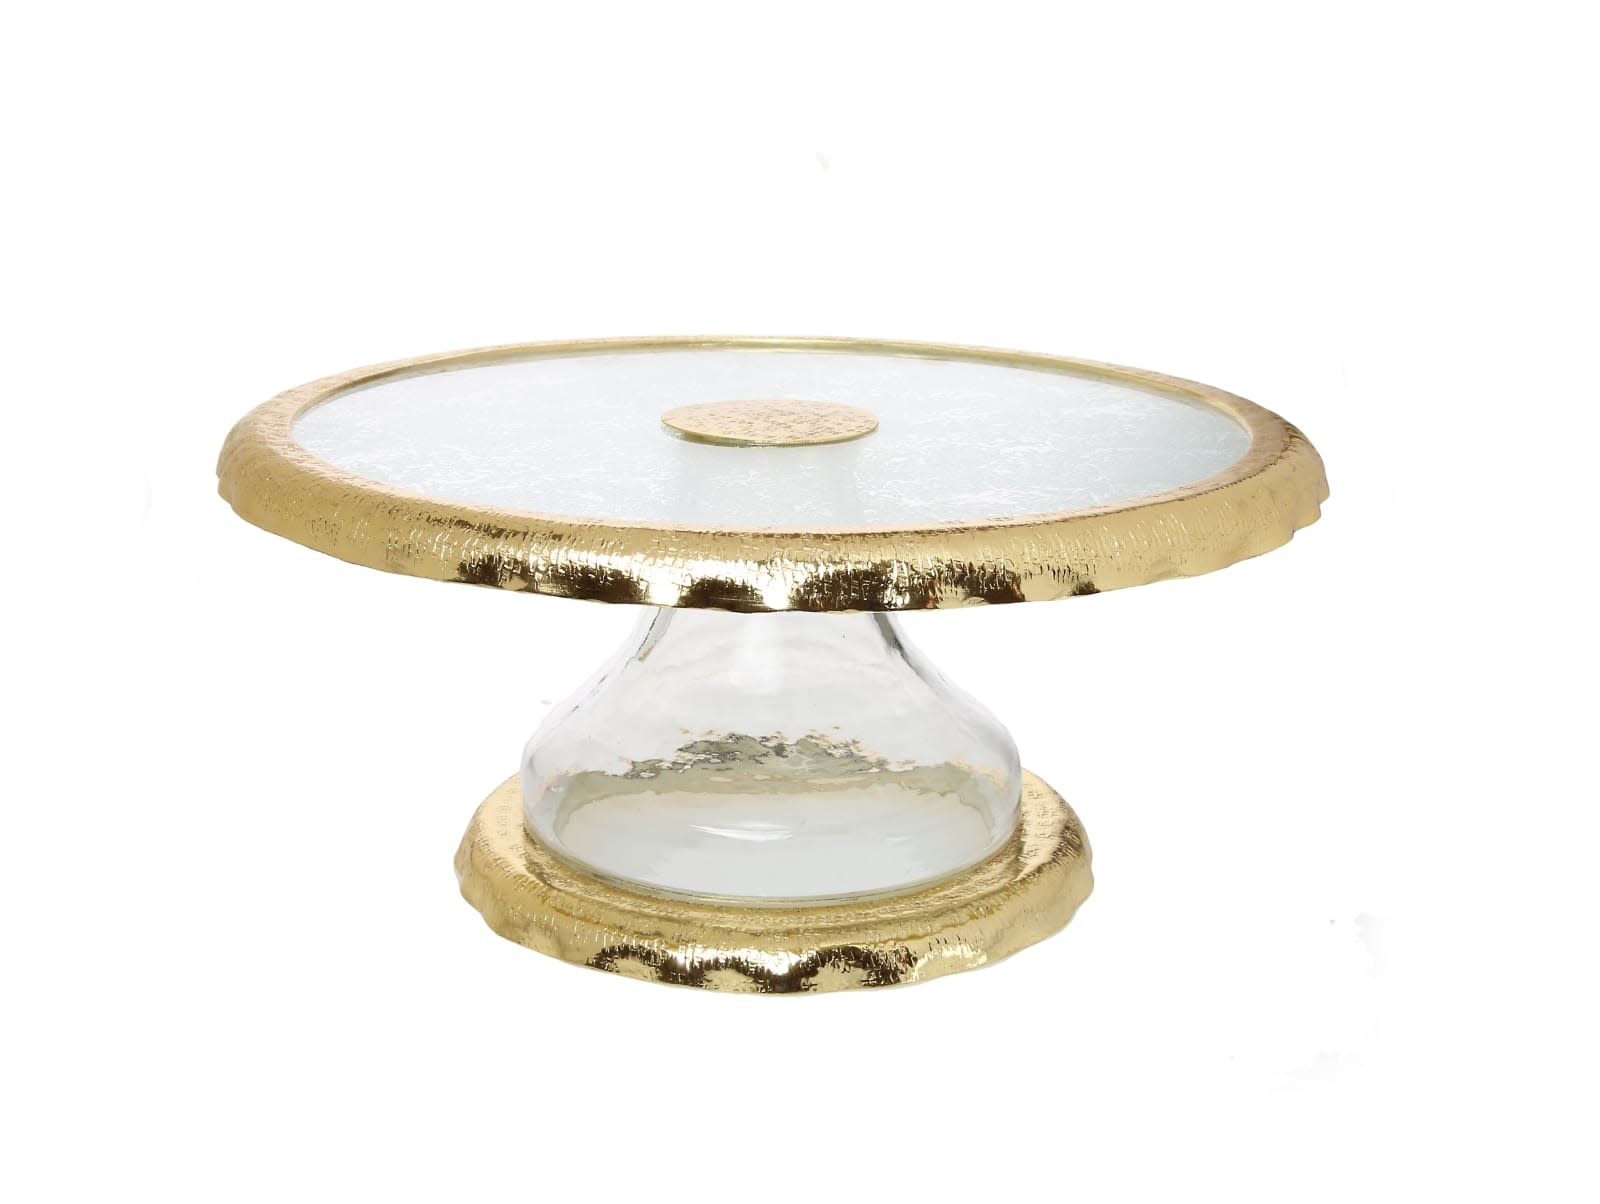 Glass Cake Stand with Gold Border